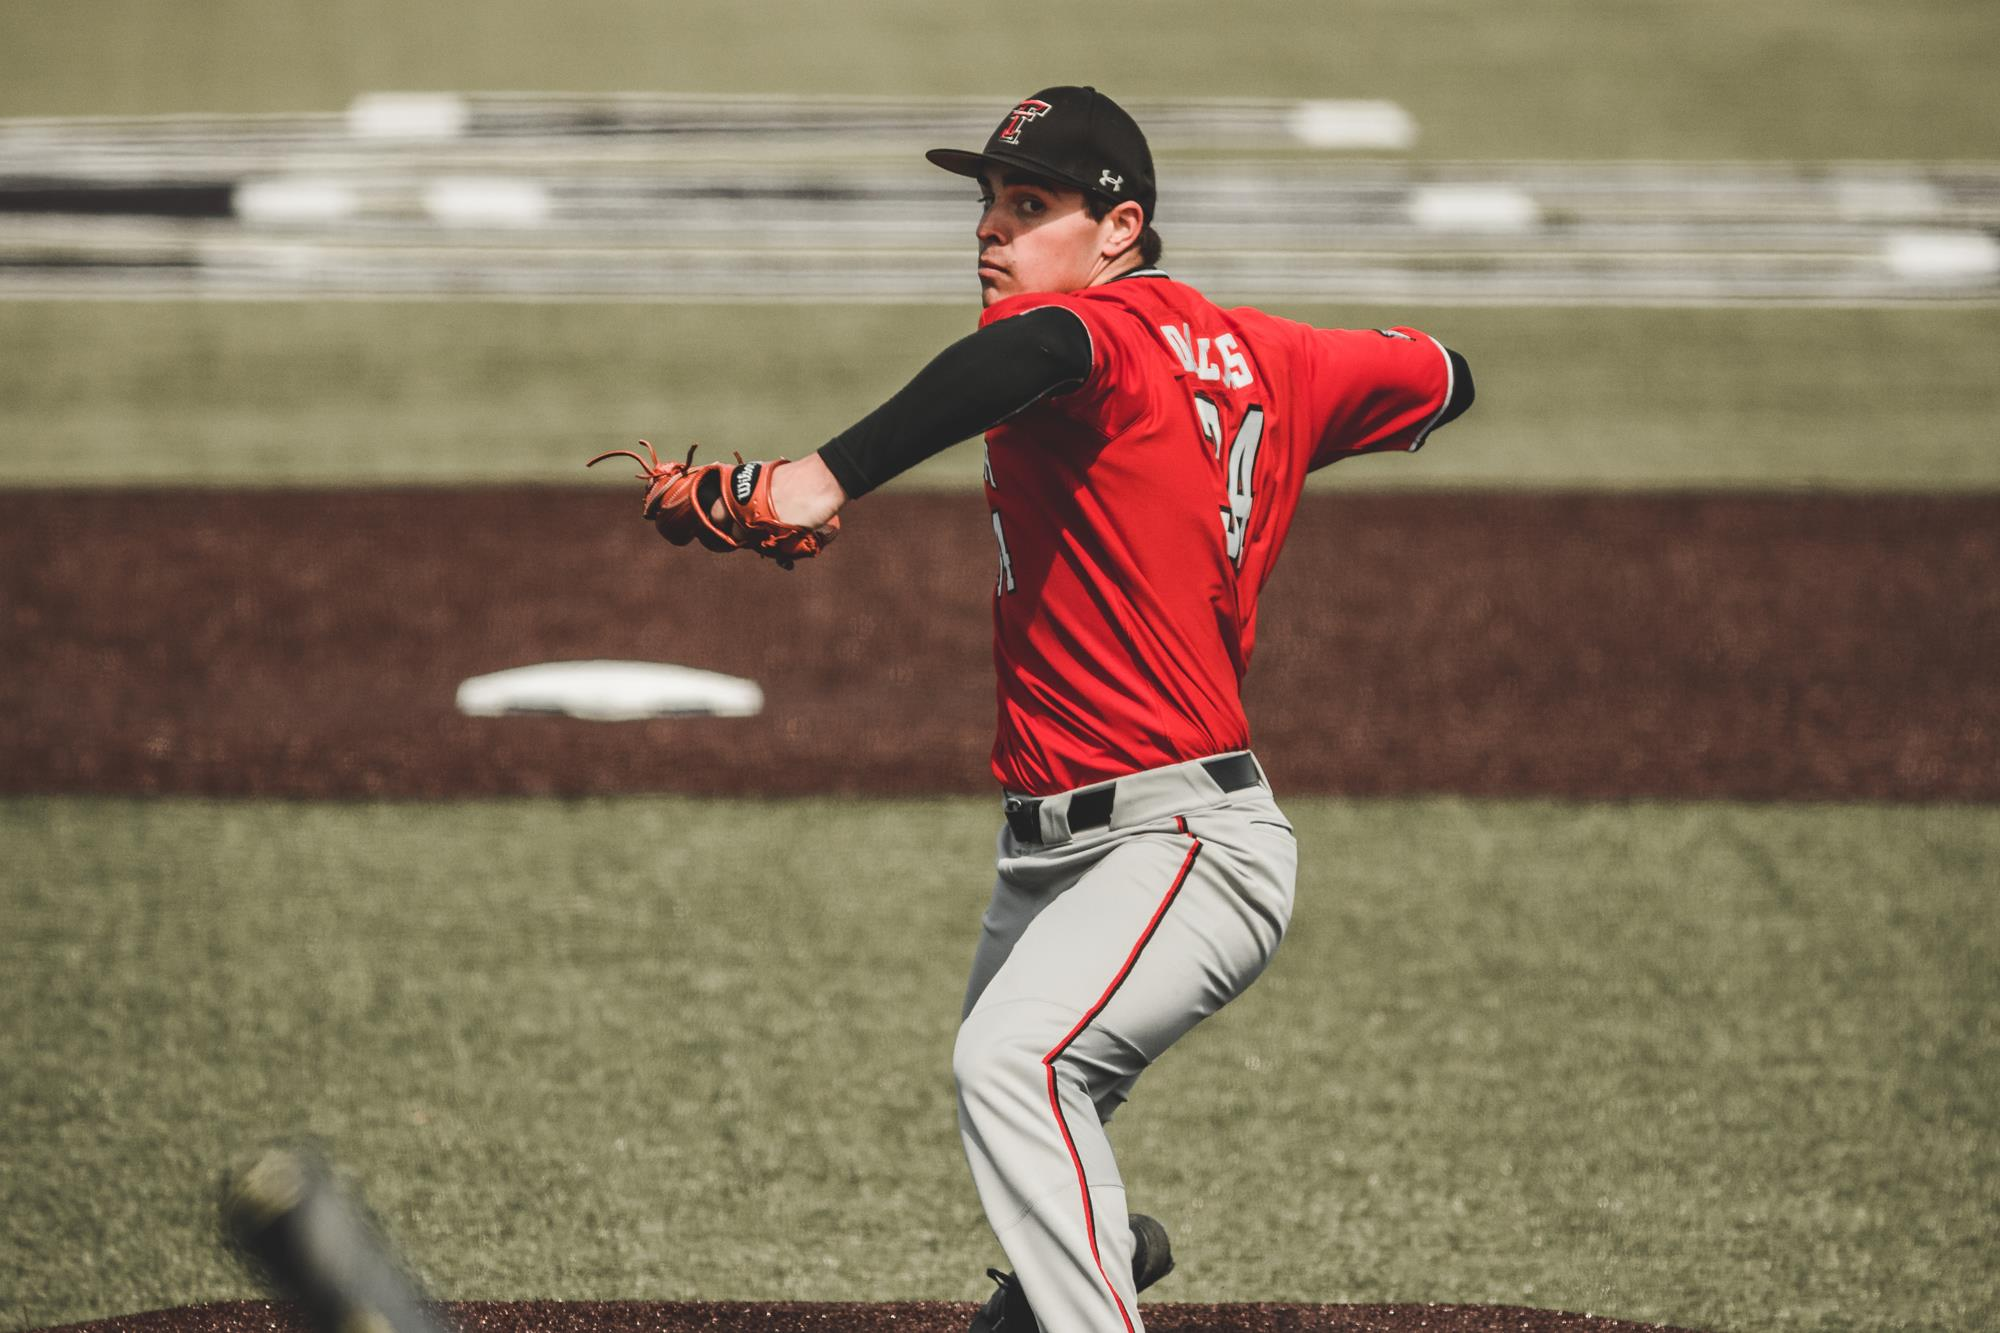 c4b18d6ca82d1 No. 11 Red Raiders Fall in Ninth at West Virginia - Texas Tech ...